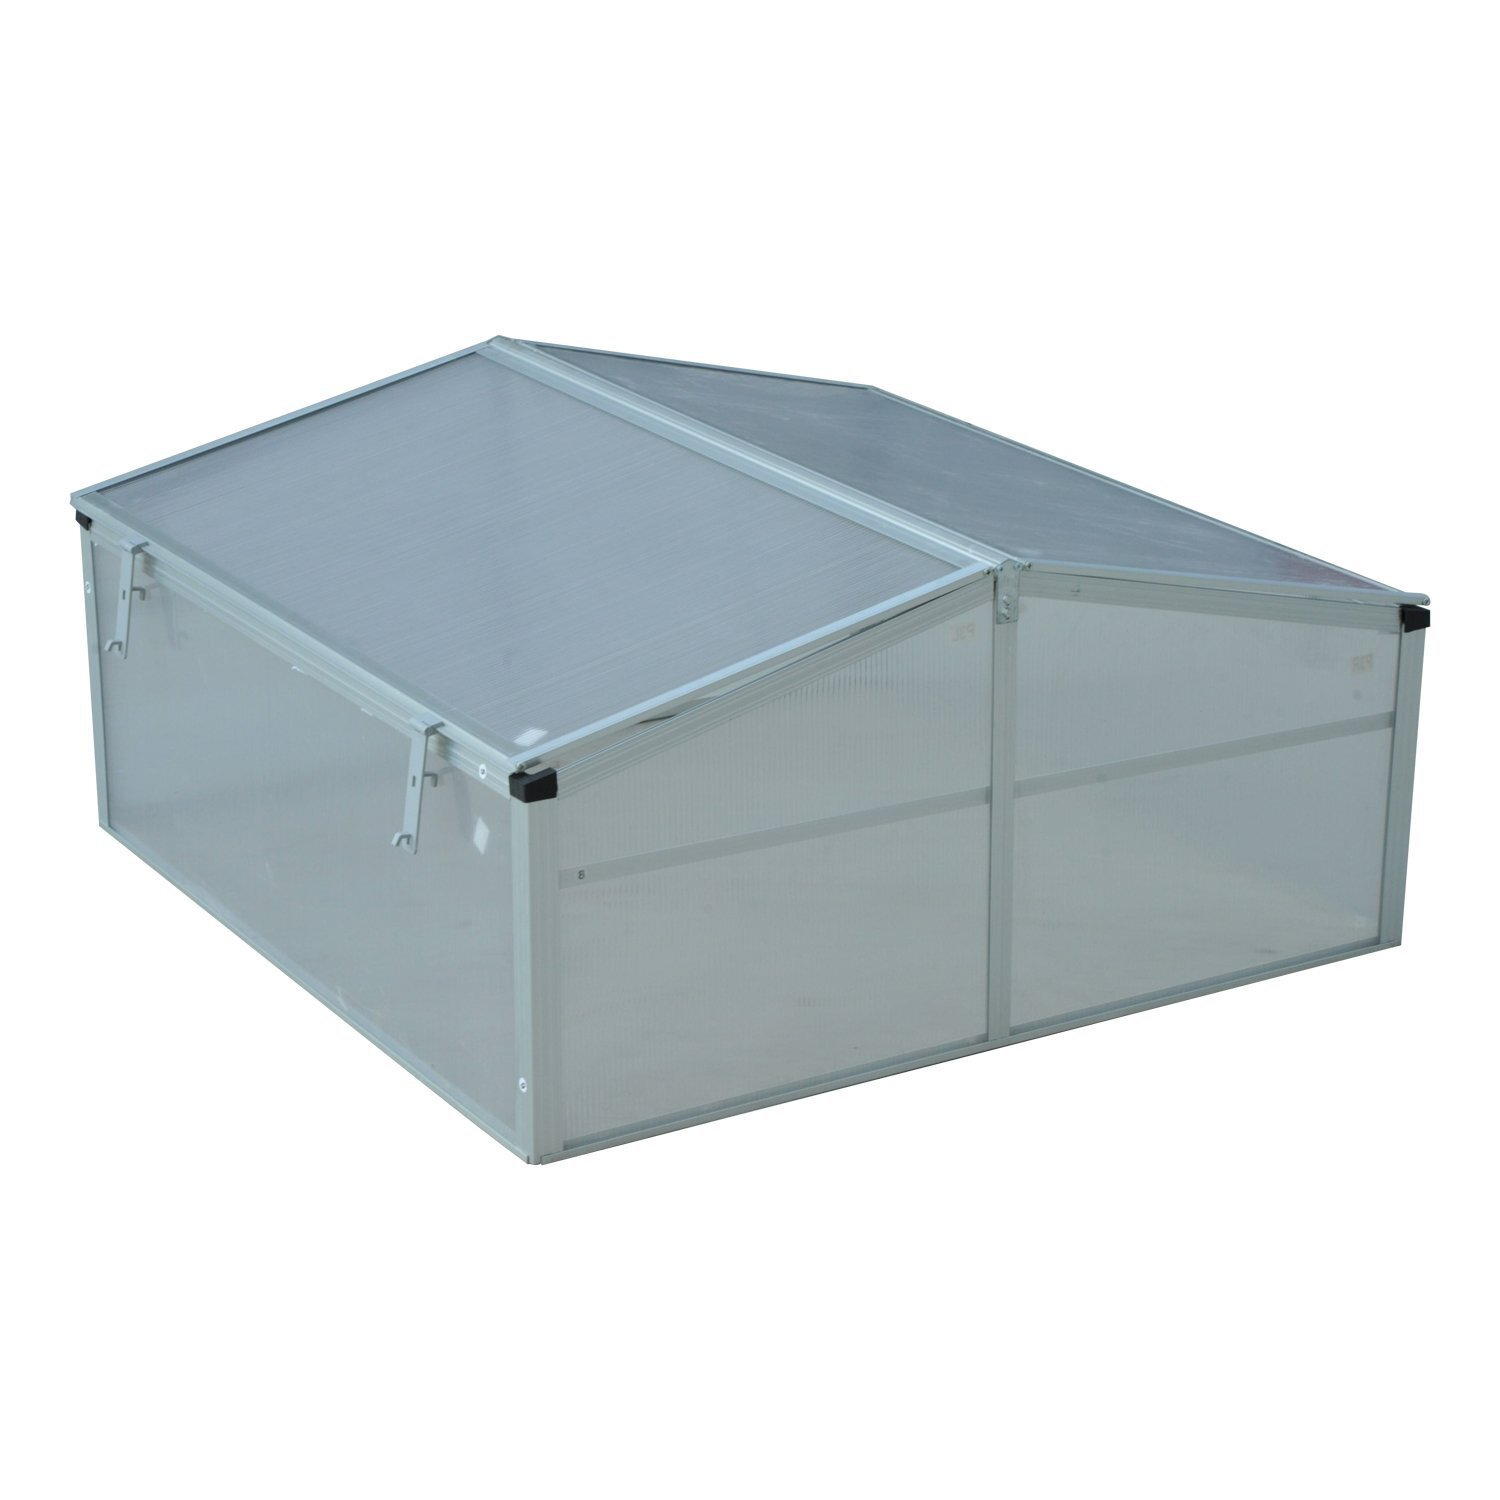 Outsunny 3 Ft W X 3 Ft D Cold Frame Greenhouse Reviews Wayfair